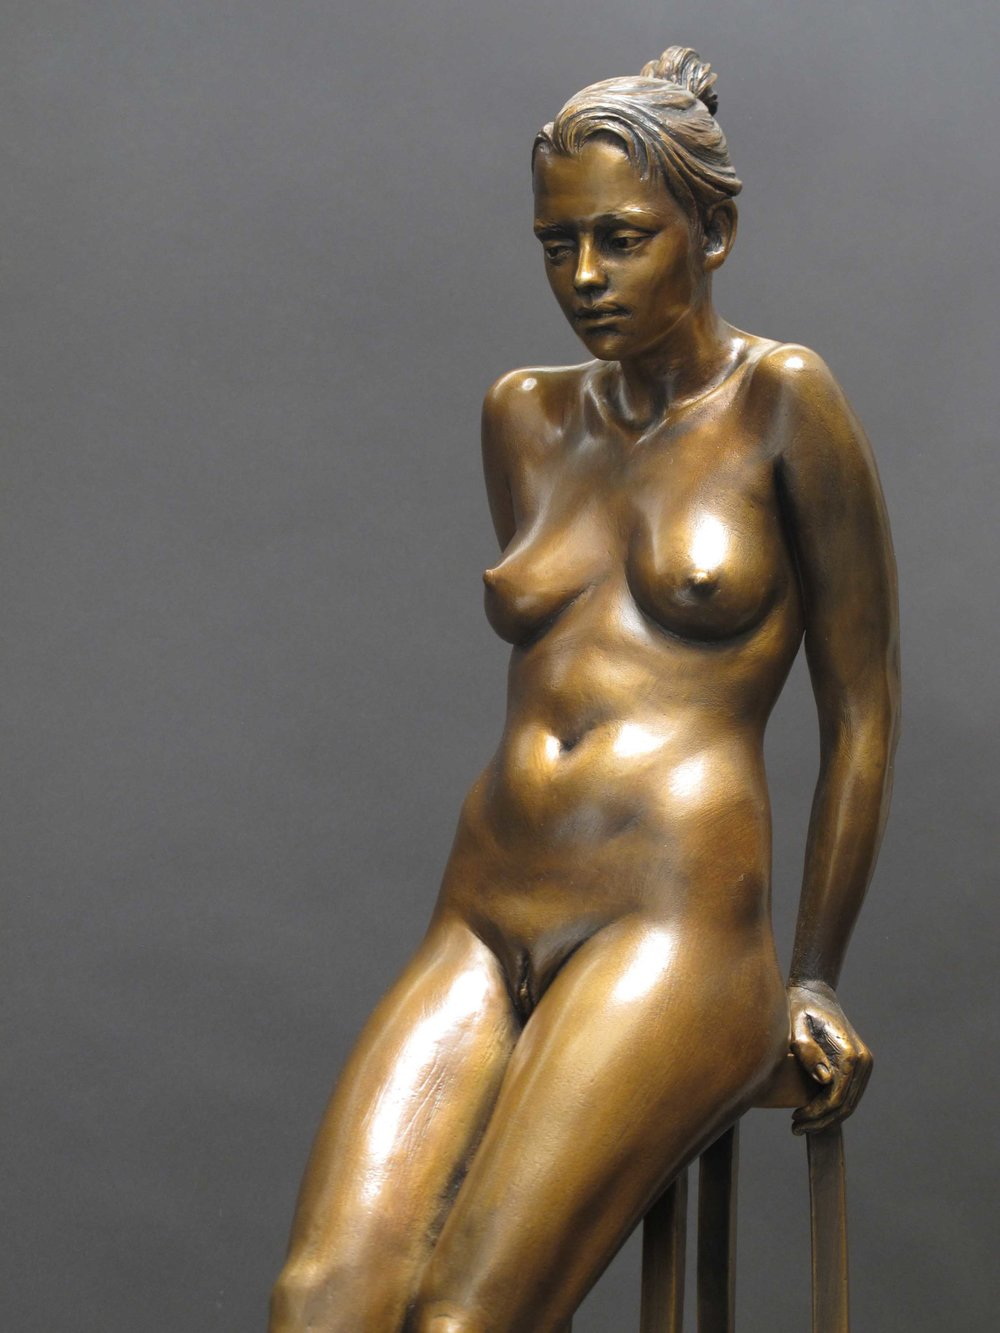 Await  - 18 X 13 X 5 in cast bronze